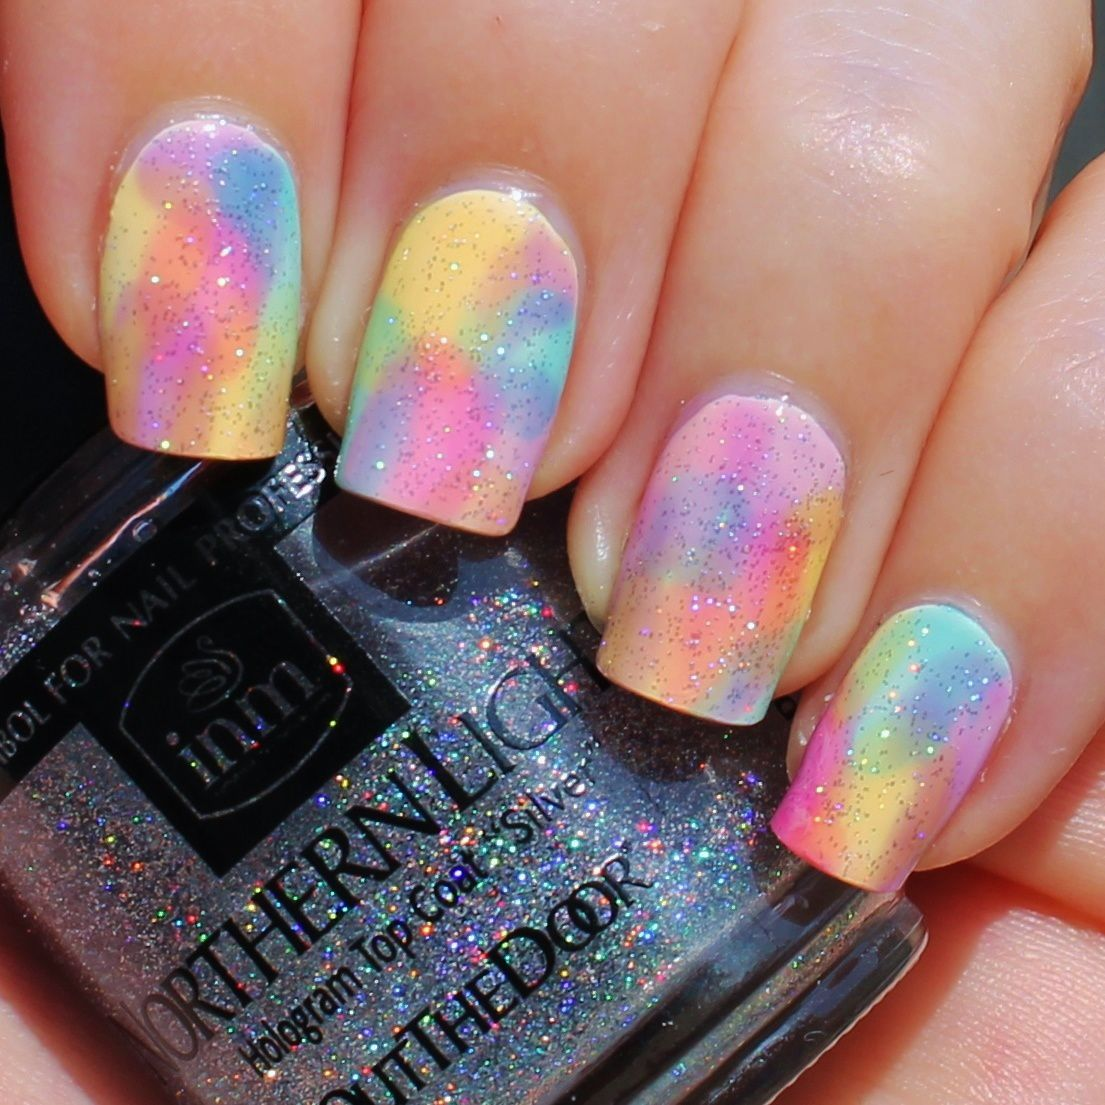 Essie Protein Base Coat / Fresh Paint Coconut / OPI Sheer Tints / Northern Lights Holographic Top Coat